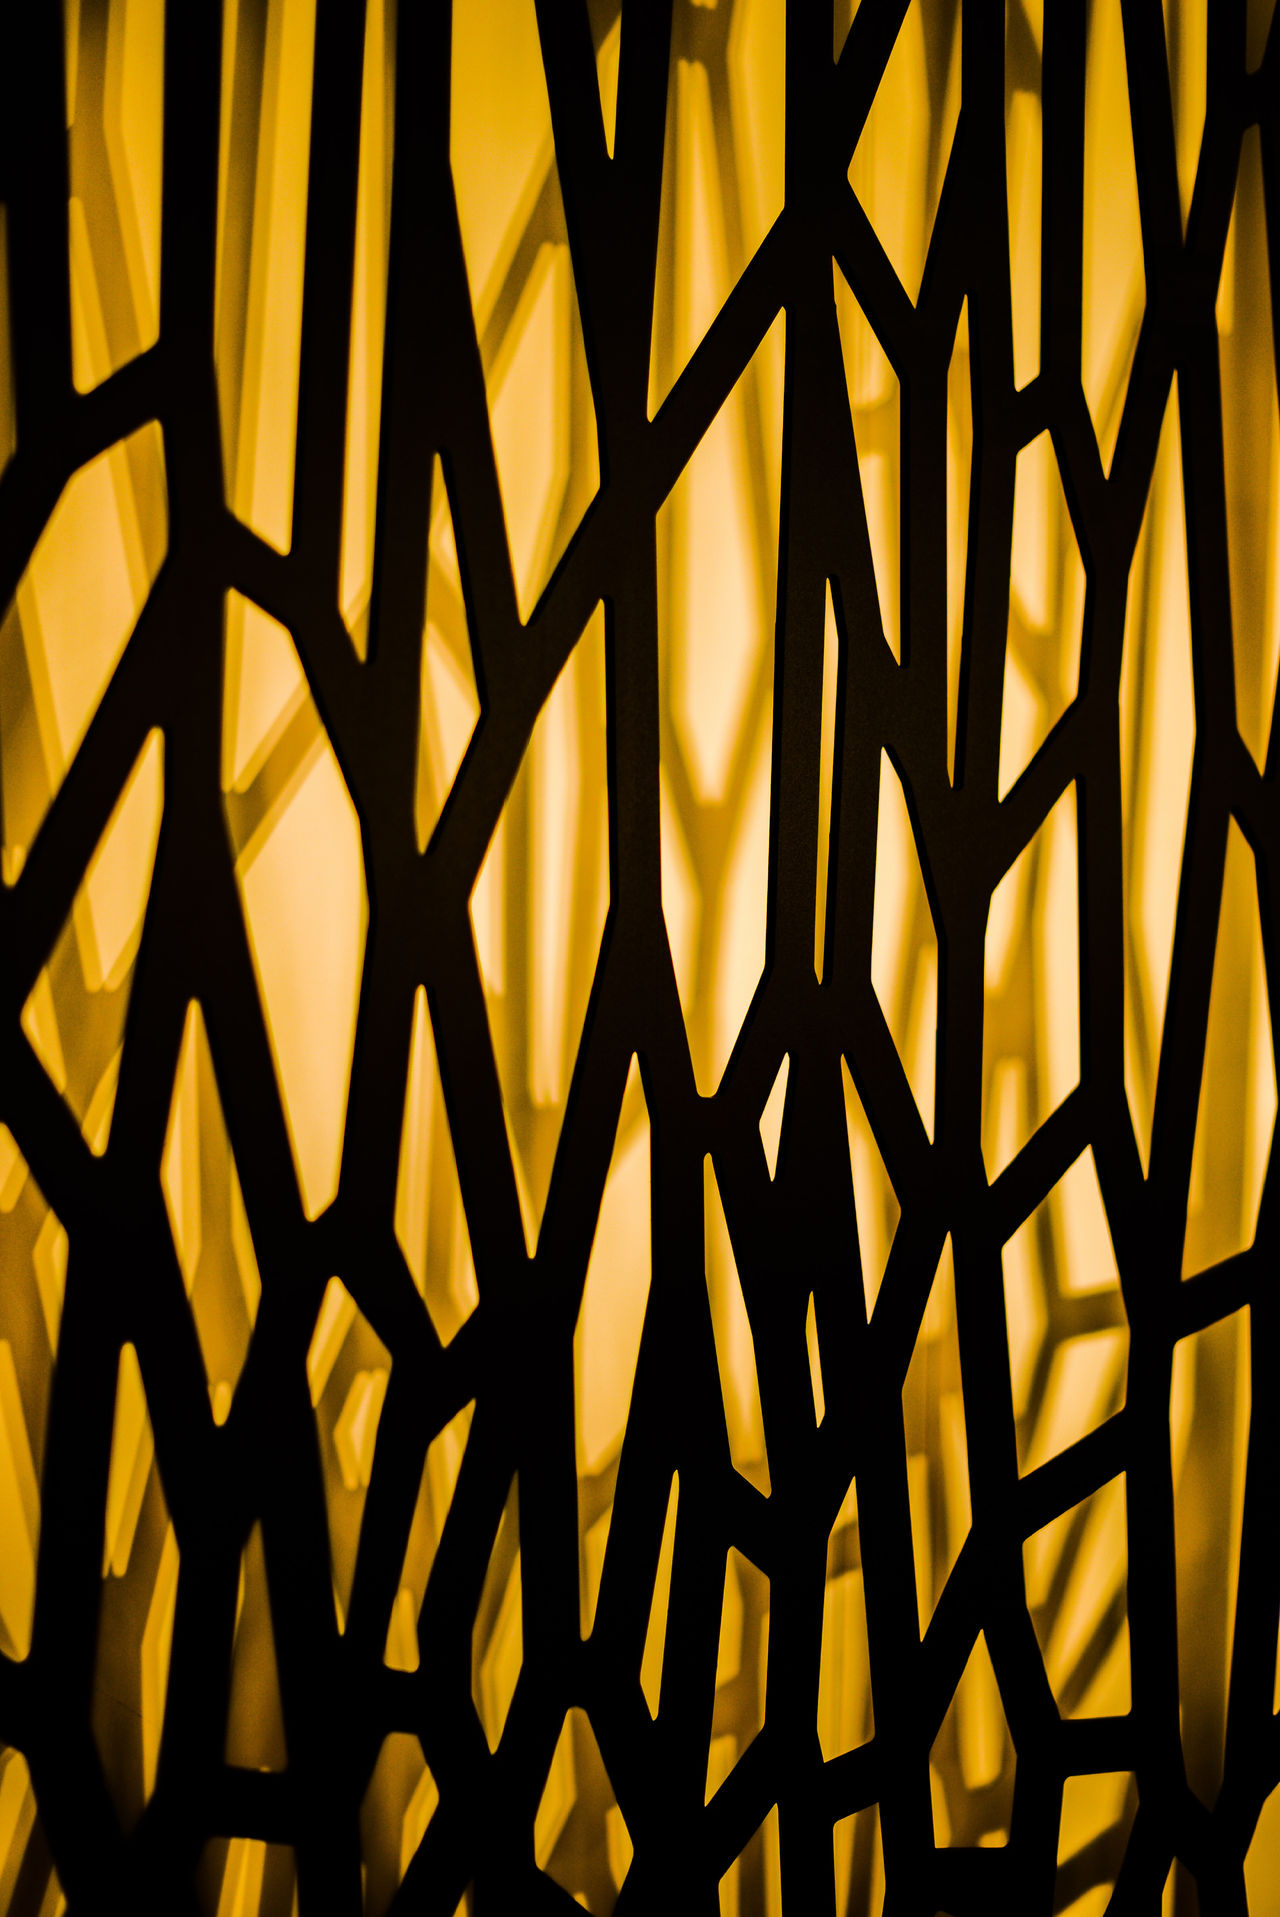 Design Details Detail Detailing Detailphotography Detailed Detailshot Detailed Images Detail Photography Pattern, Texture, Shape And Form Mobile Photography Patterns Pattern Photography Silhouette Photography Pattern And Details Shadows & Lights Abstract Details Textures And Shapes Details Architecture_collection Architecture Detailed To Perfection Details In Close Up Shadows & Light Shadows On The Wall Shadows And Silhouettes Abstractarchitecture Abstract Photography